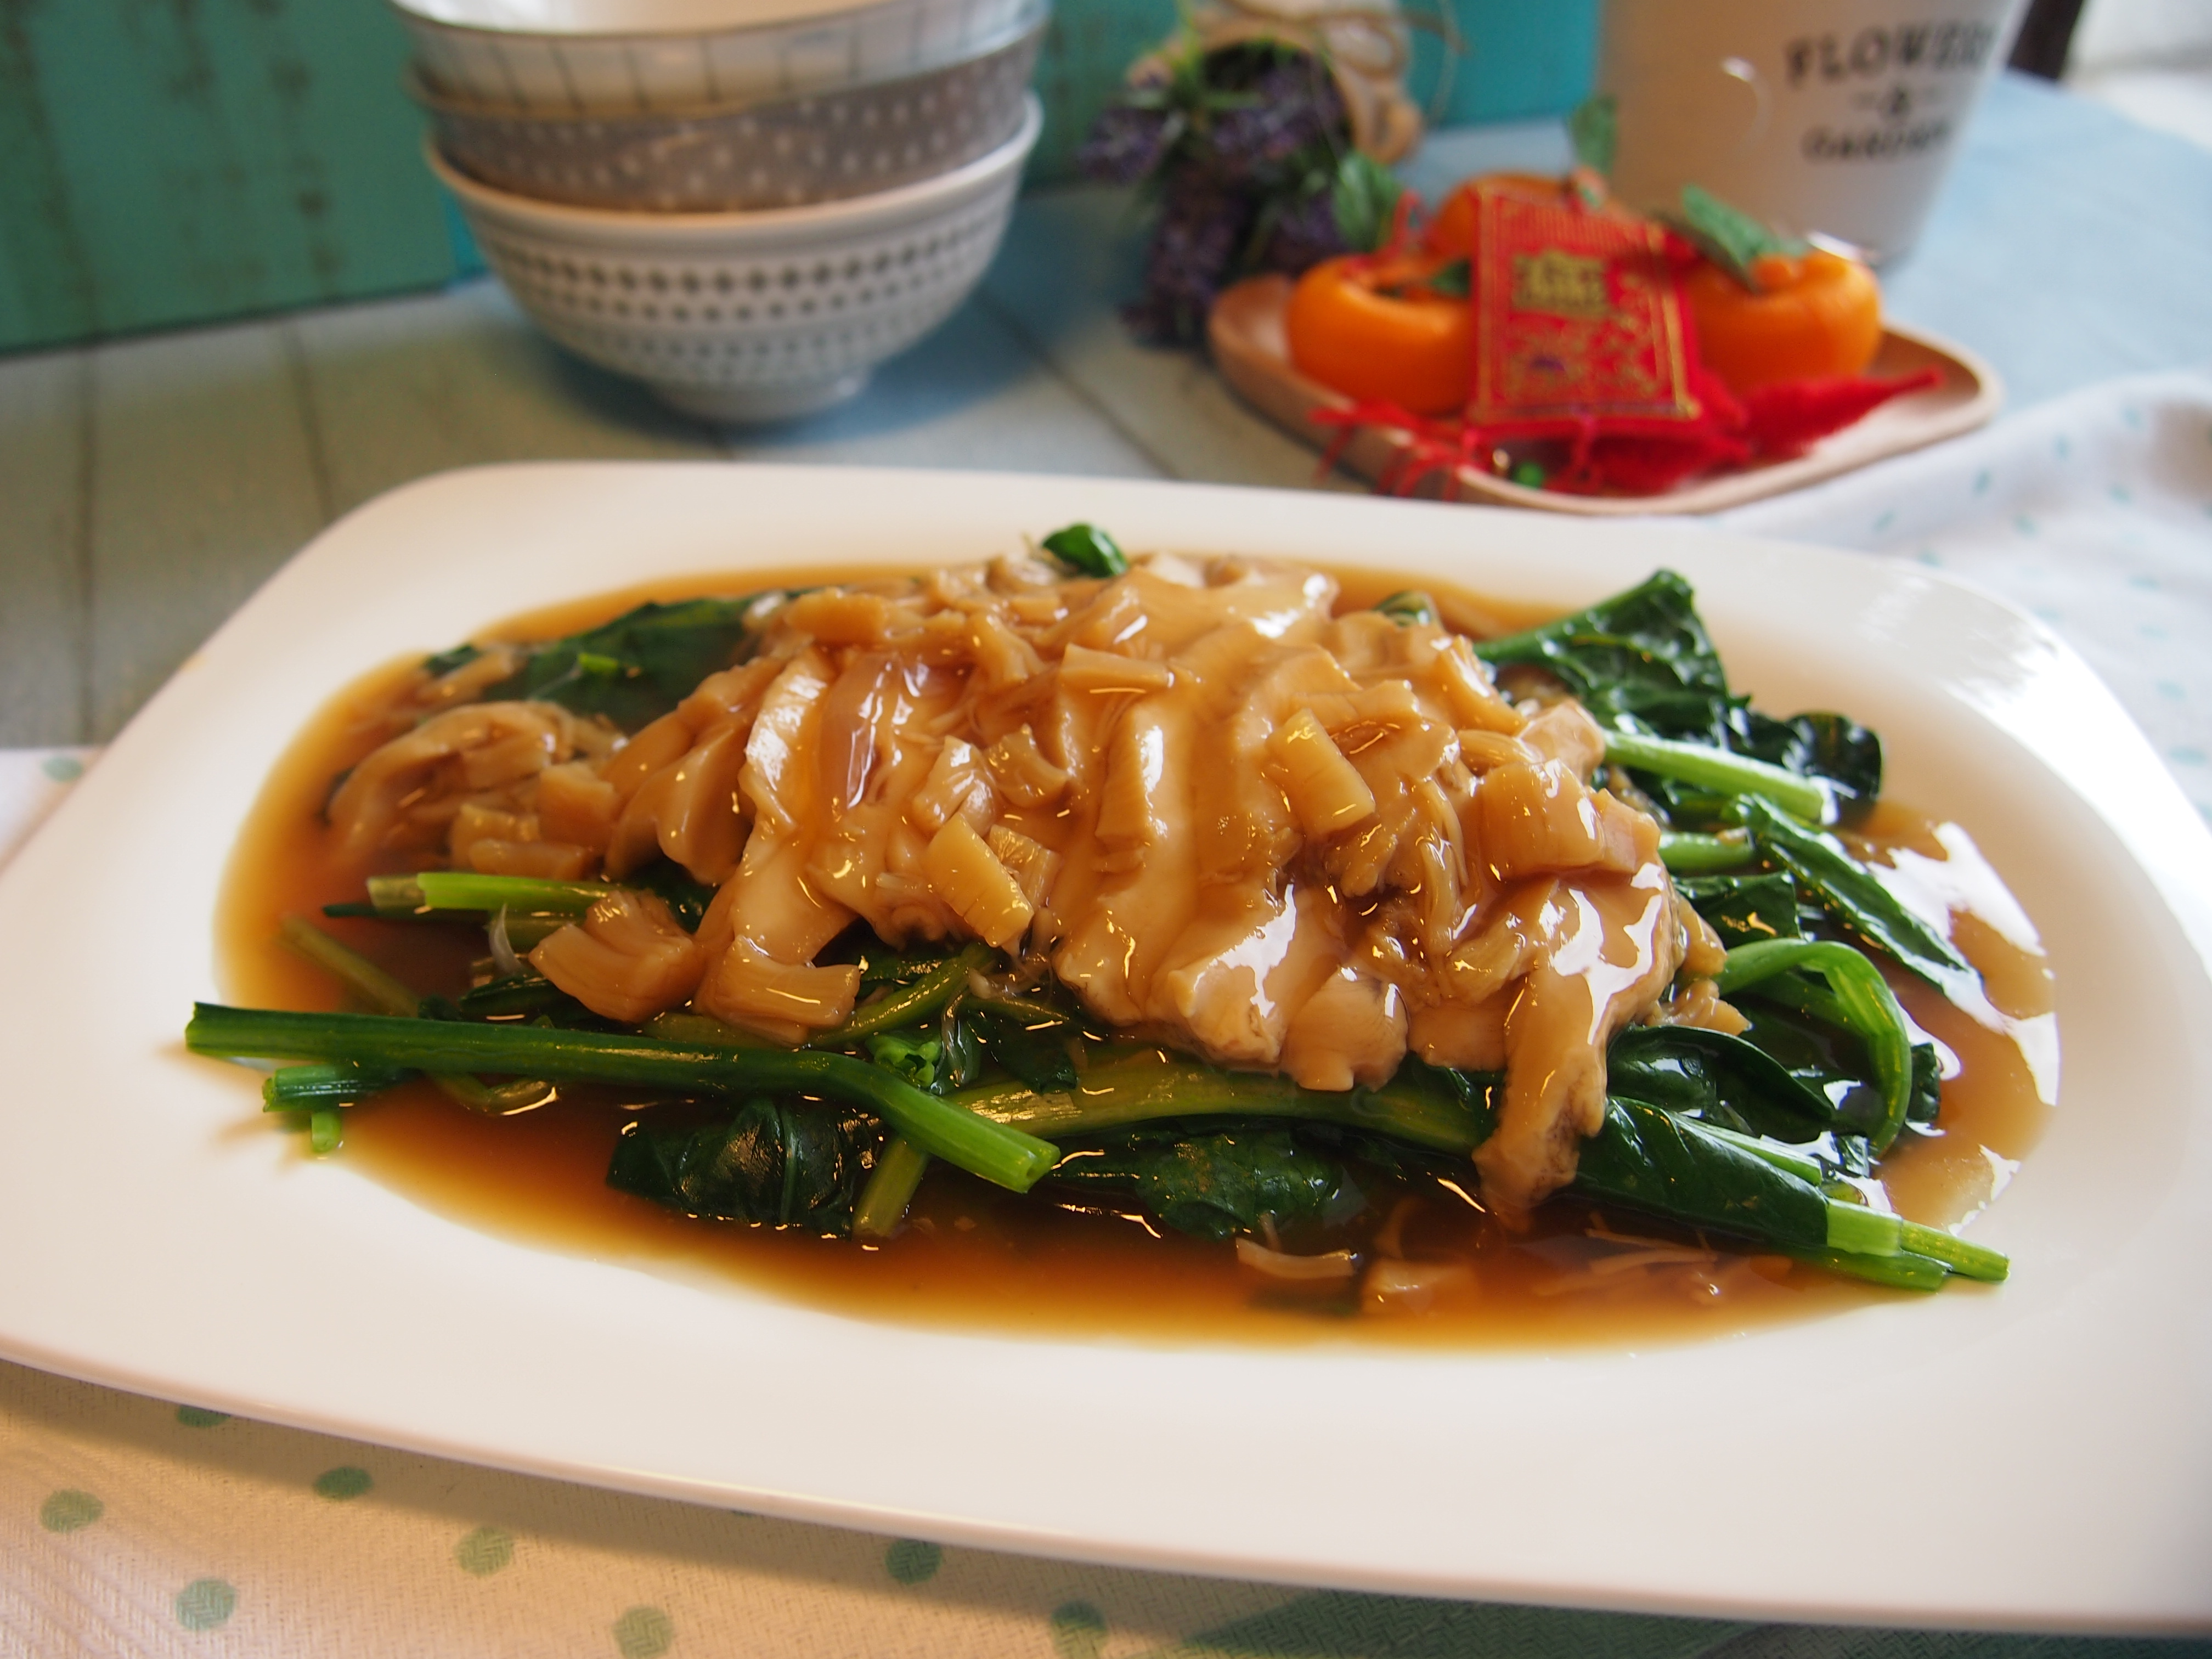 CNY Reunion Dinner Recipe: Braised Abalone with Spinach 鲍鱼菠菜